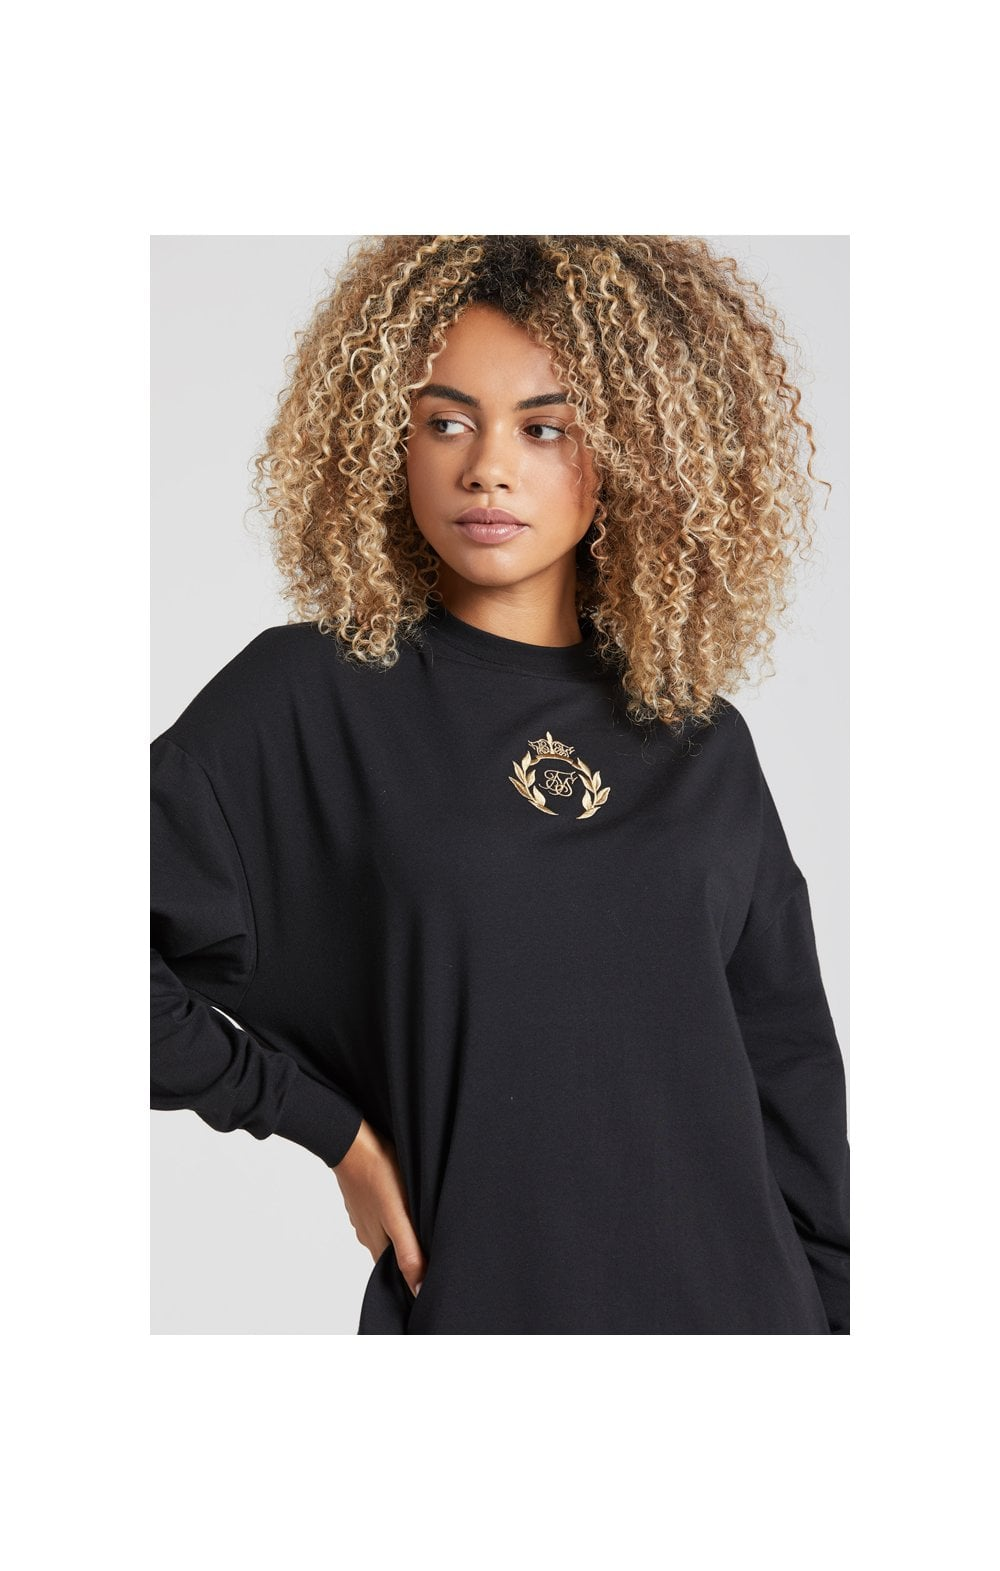 SikSilk Prestige Tshirt Dress - Black (2)